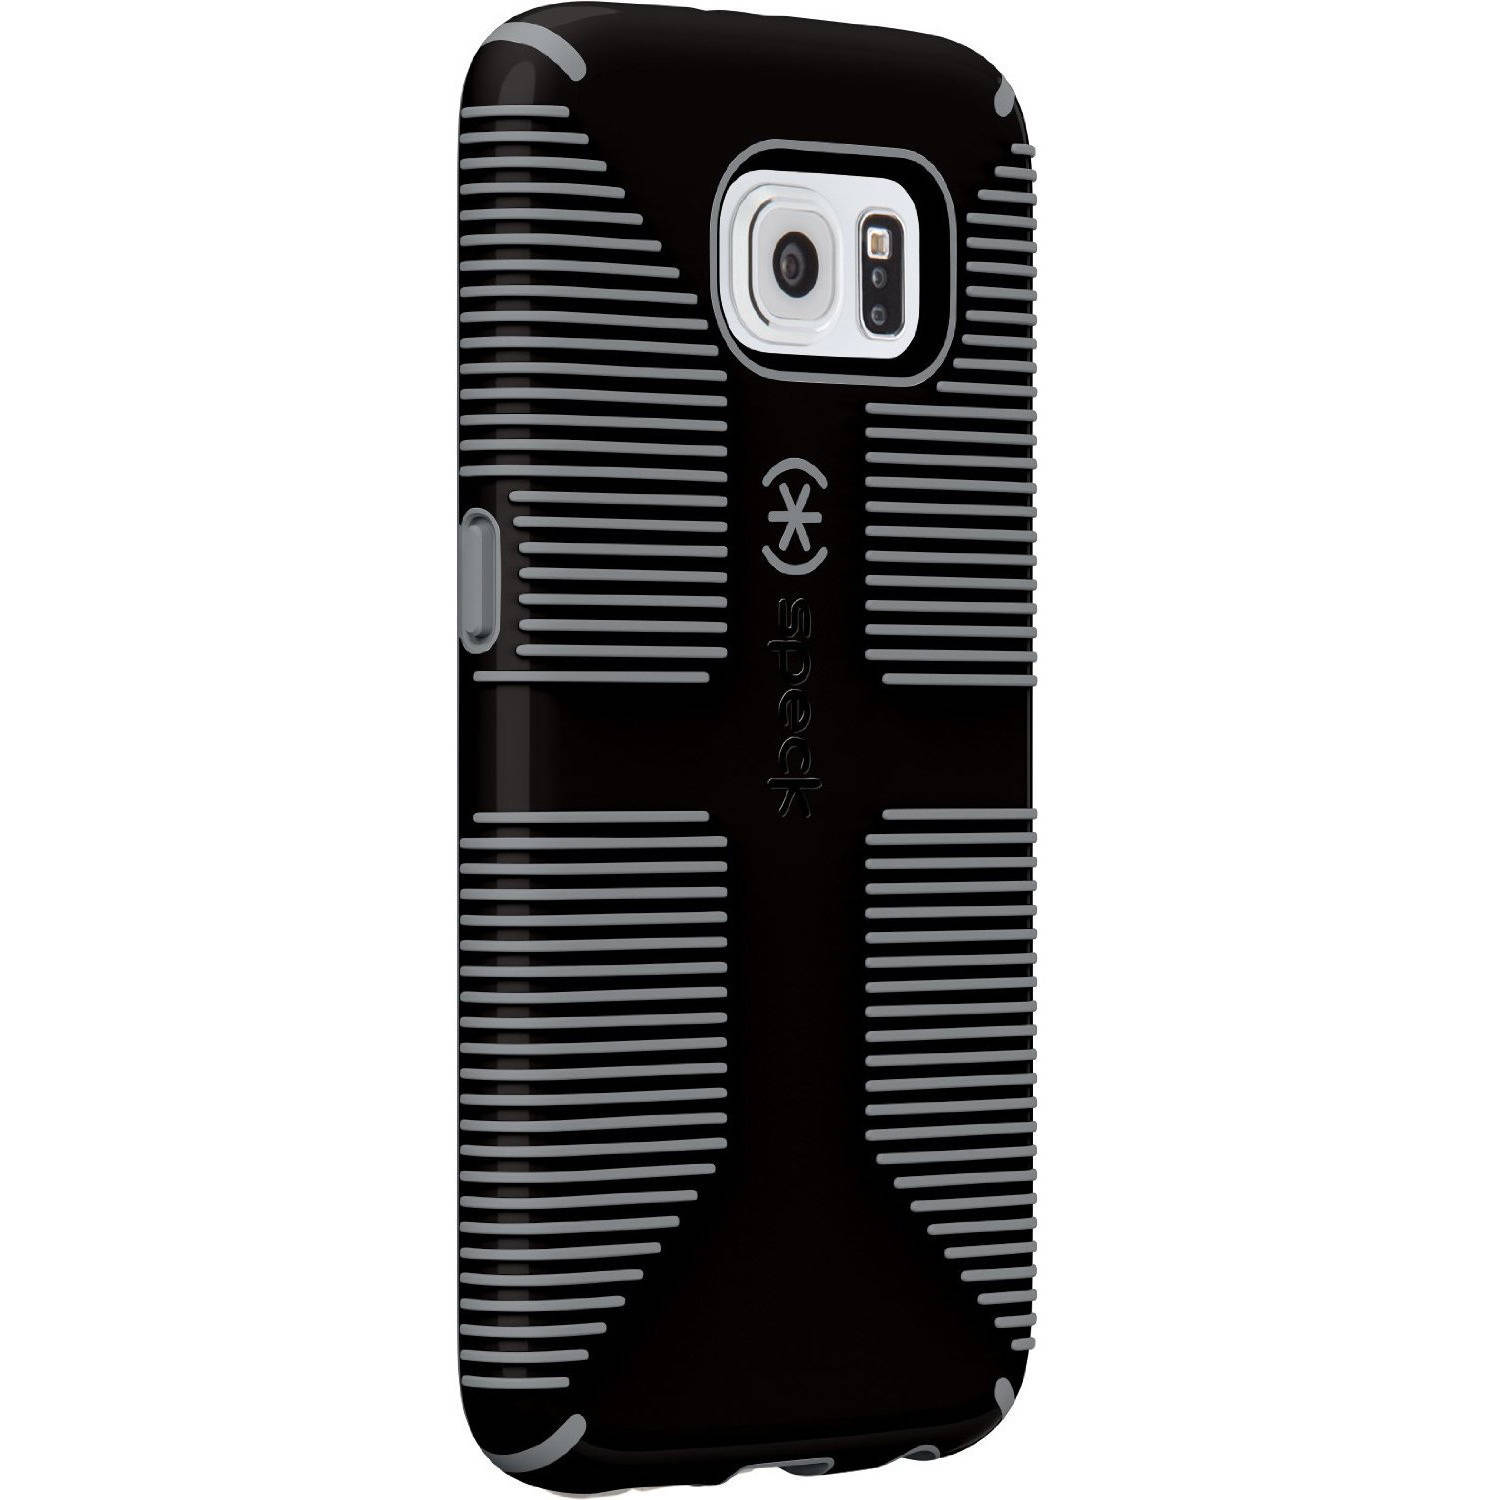 Speck CandyShell Grip Case for Samsung Galaxy S6